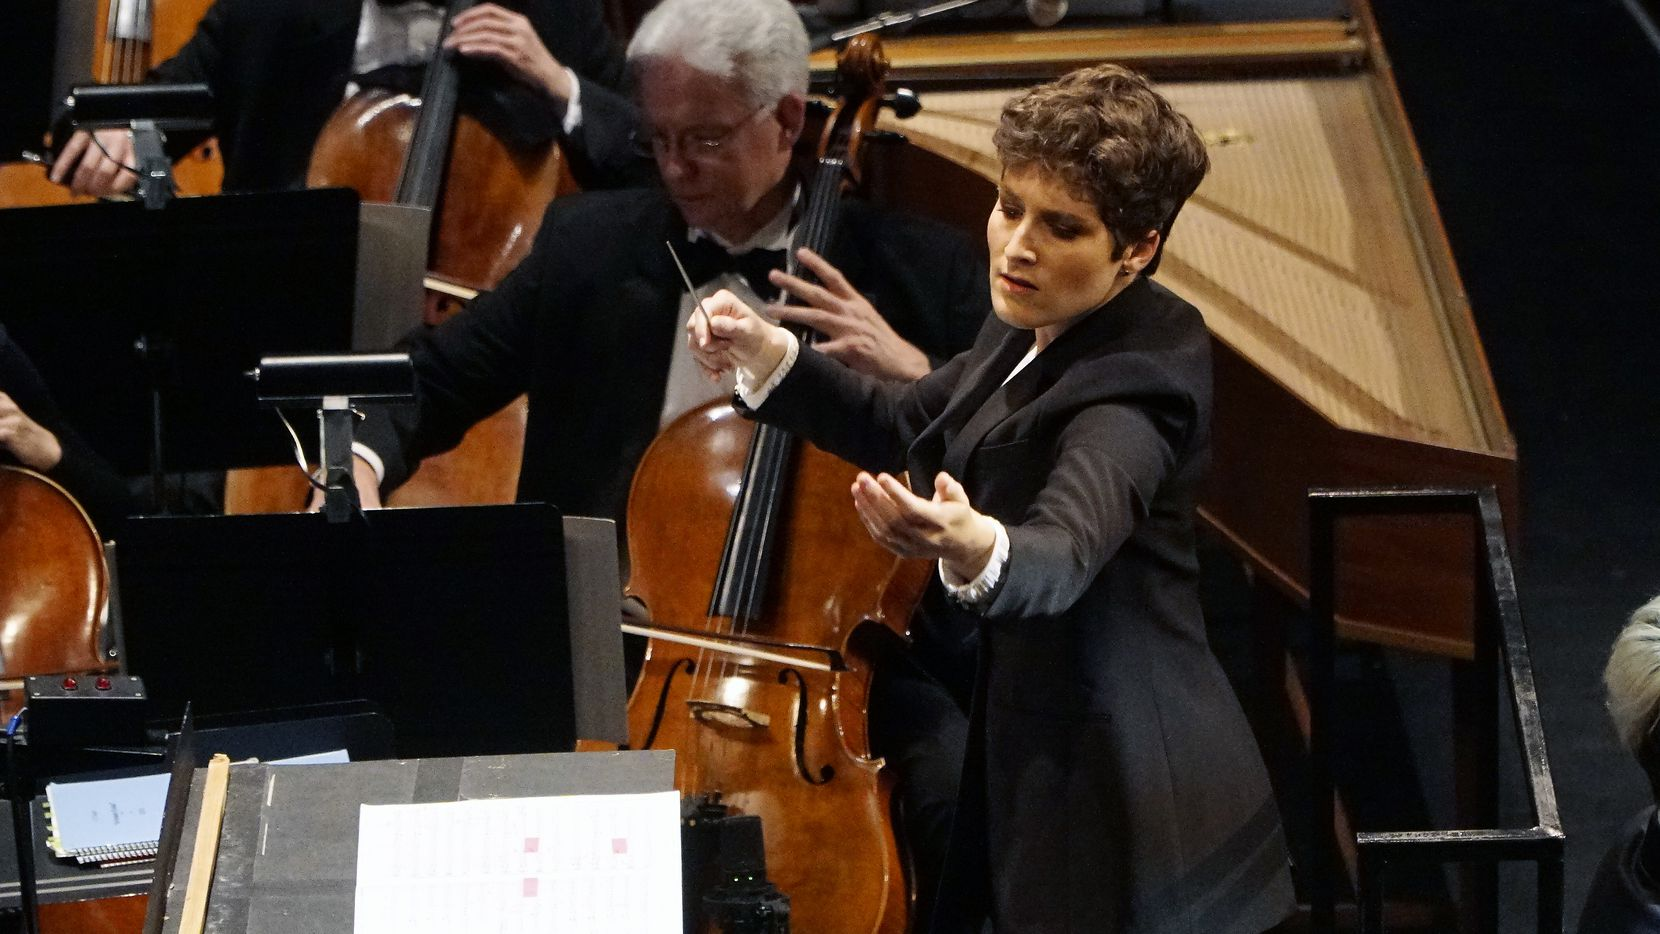 Tamara Dworetz conducts the Dallas Symphony Orchestra during the Hart Institute for Women Conductors showcase concert at the Winspear Opera House on Nov. 9, 2019.